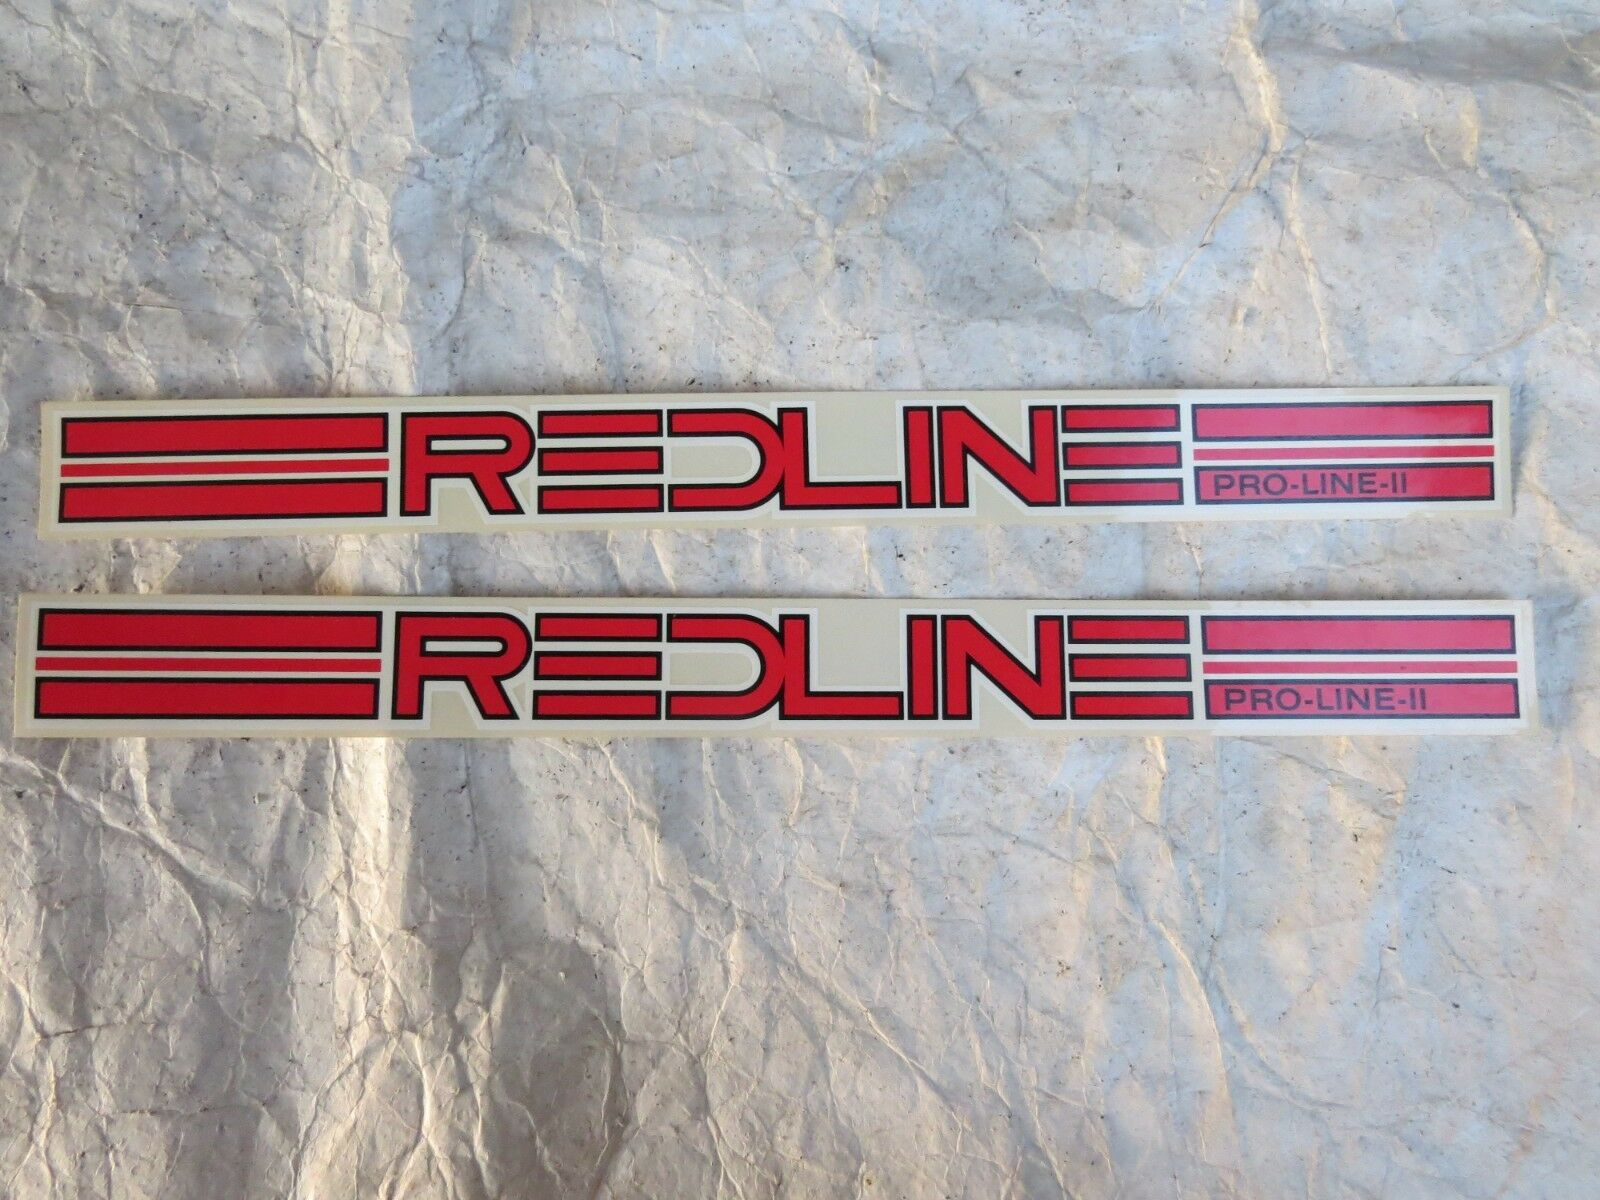 REDLINE DECALS   PRO-LINE 11 PL 20 bmx cruiser freestyle VINTAGE NOS  authentic quality